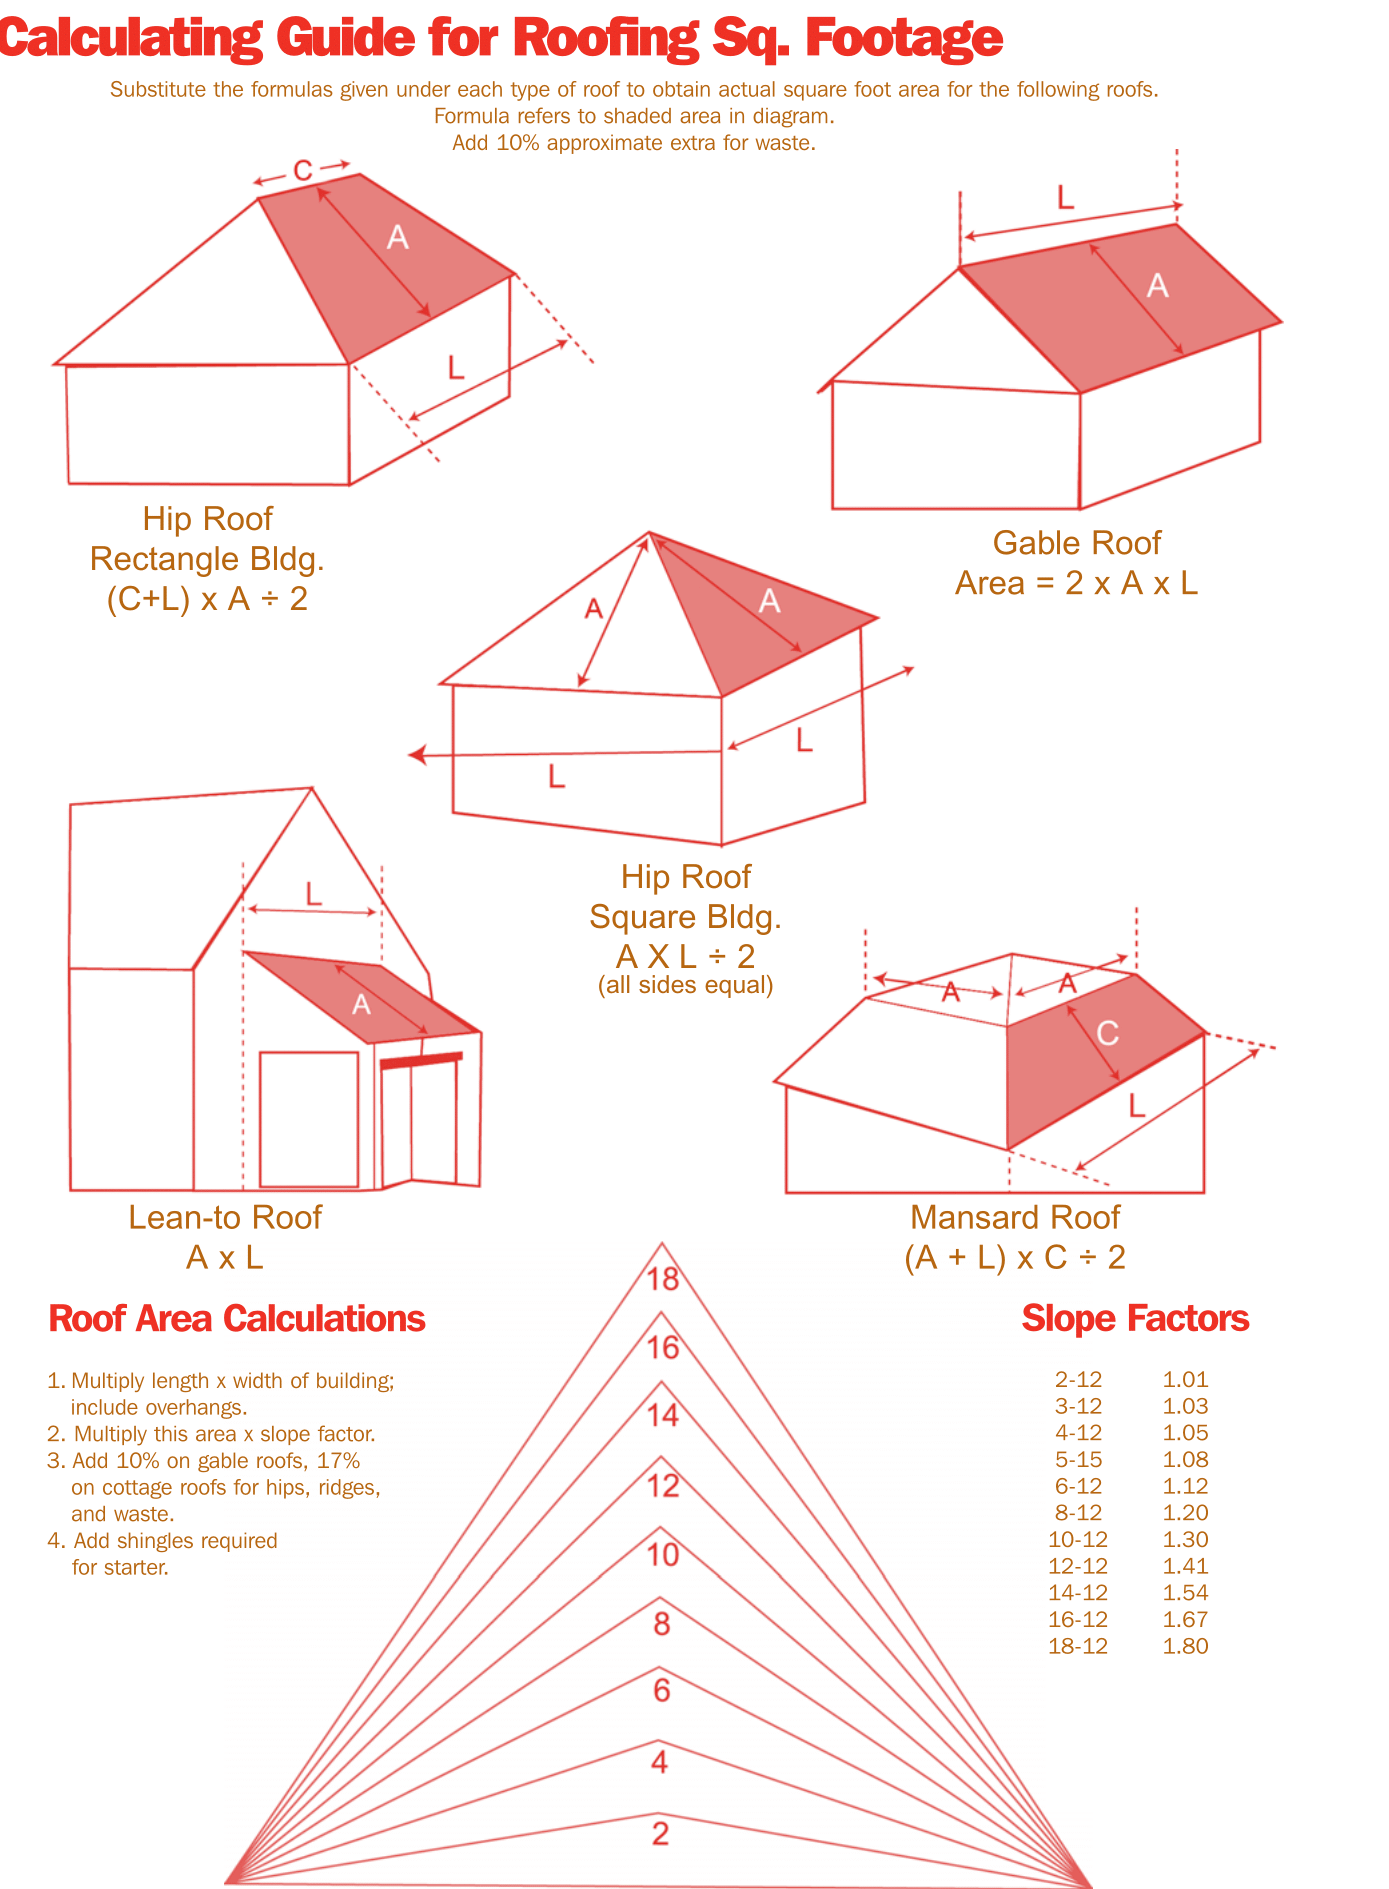 How to Measure and Estimate a Roof Like a Pro? - DIY Guide